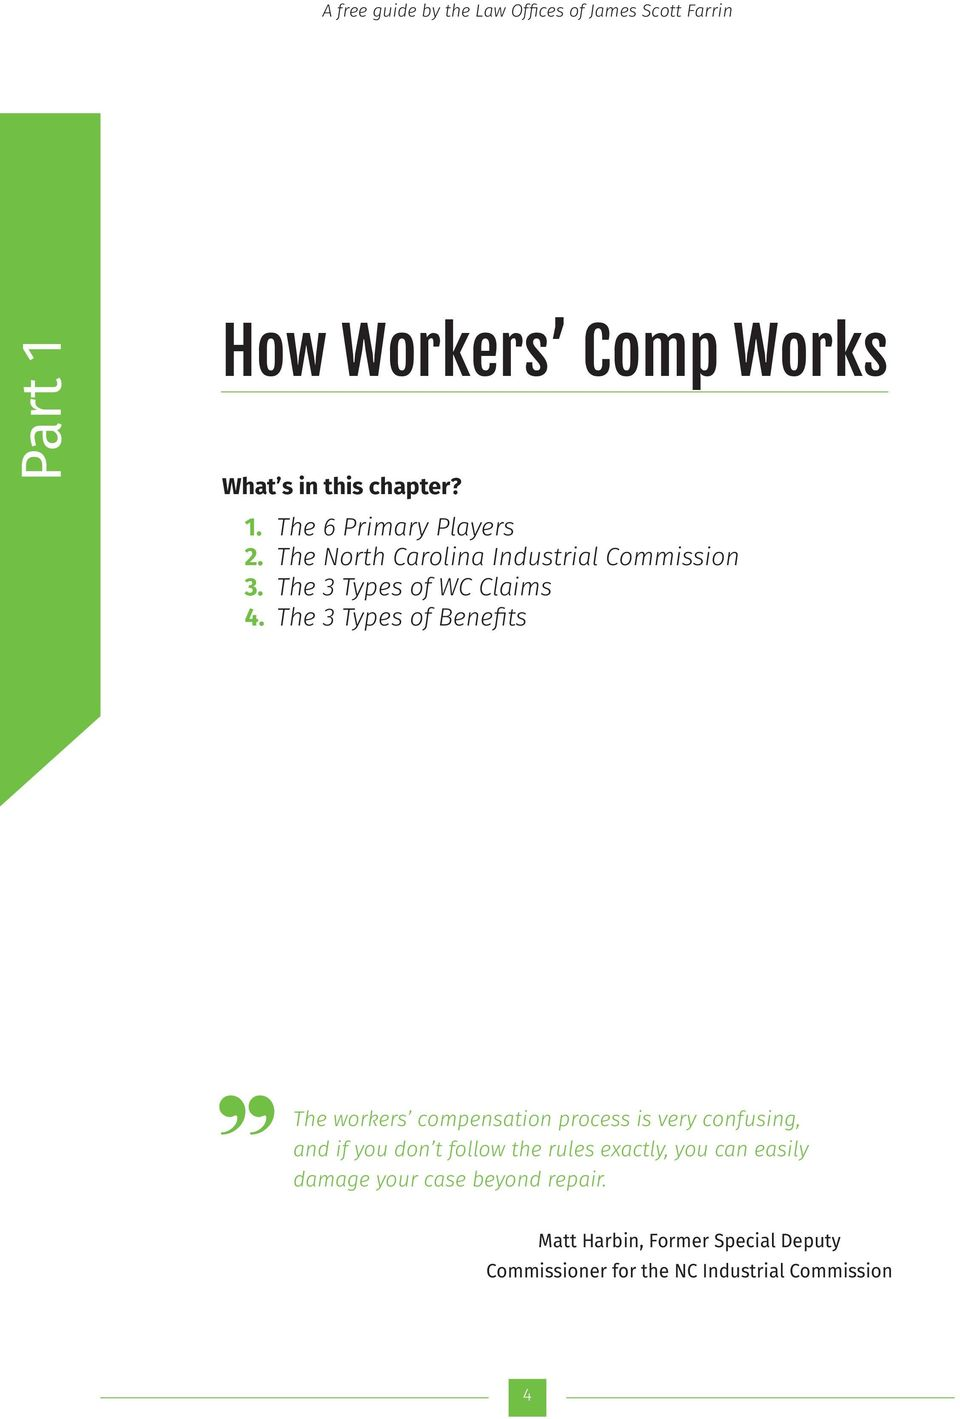 The 3 Types of Benefits The workers compensation process is very confusing, and if you don t follow